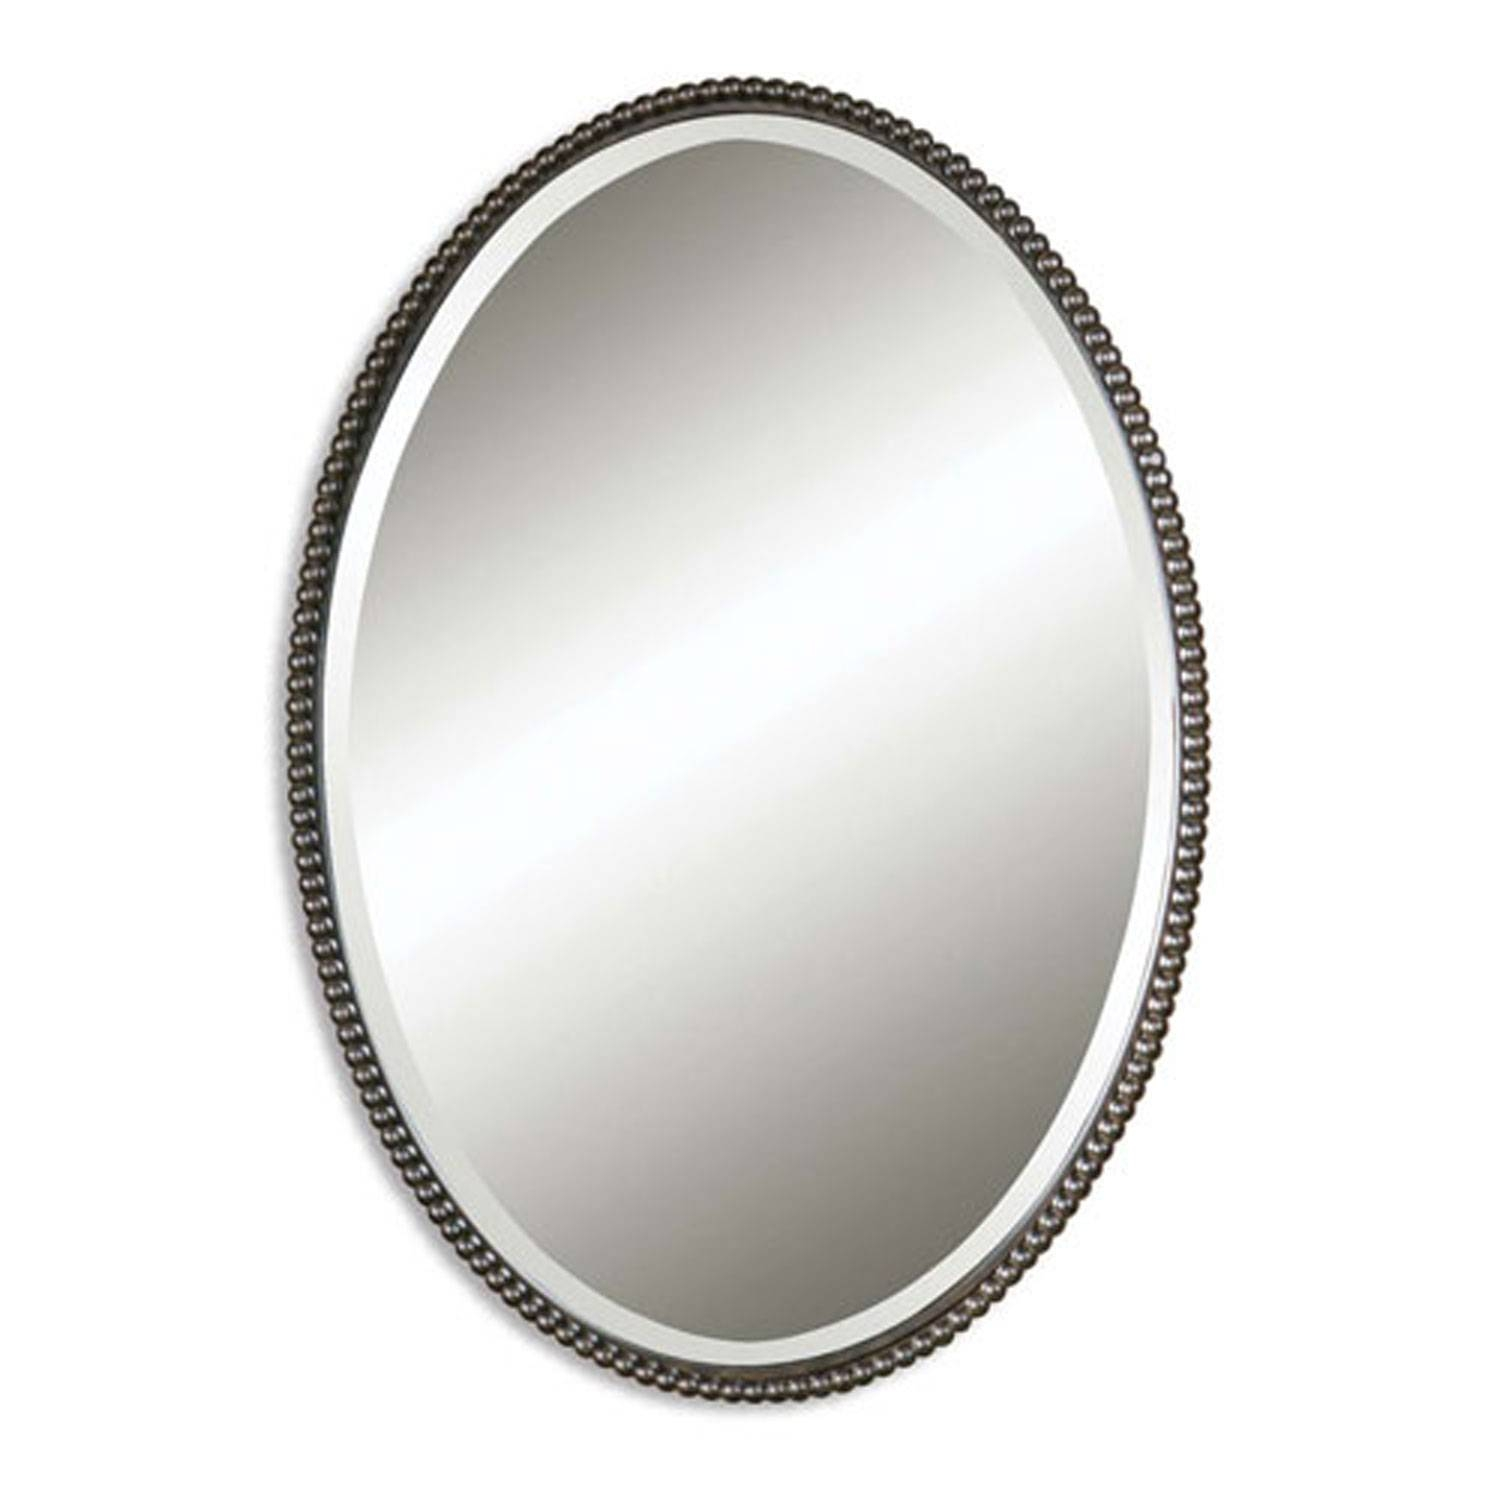 Sherise Oval Mirror Uttermost Wall Mirror Mirrors Home Decor Within Oval Mirrors For Walls (View 11 of 25)